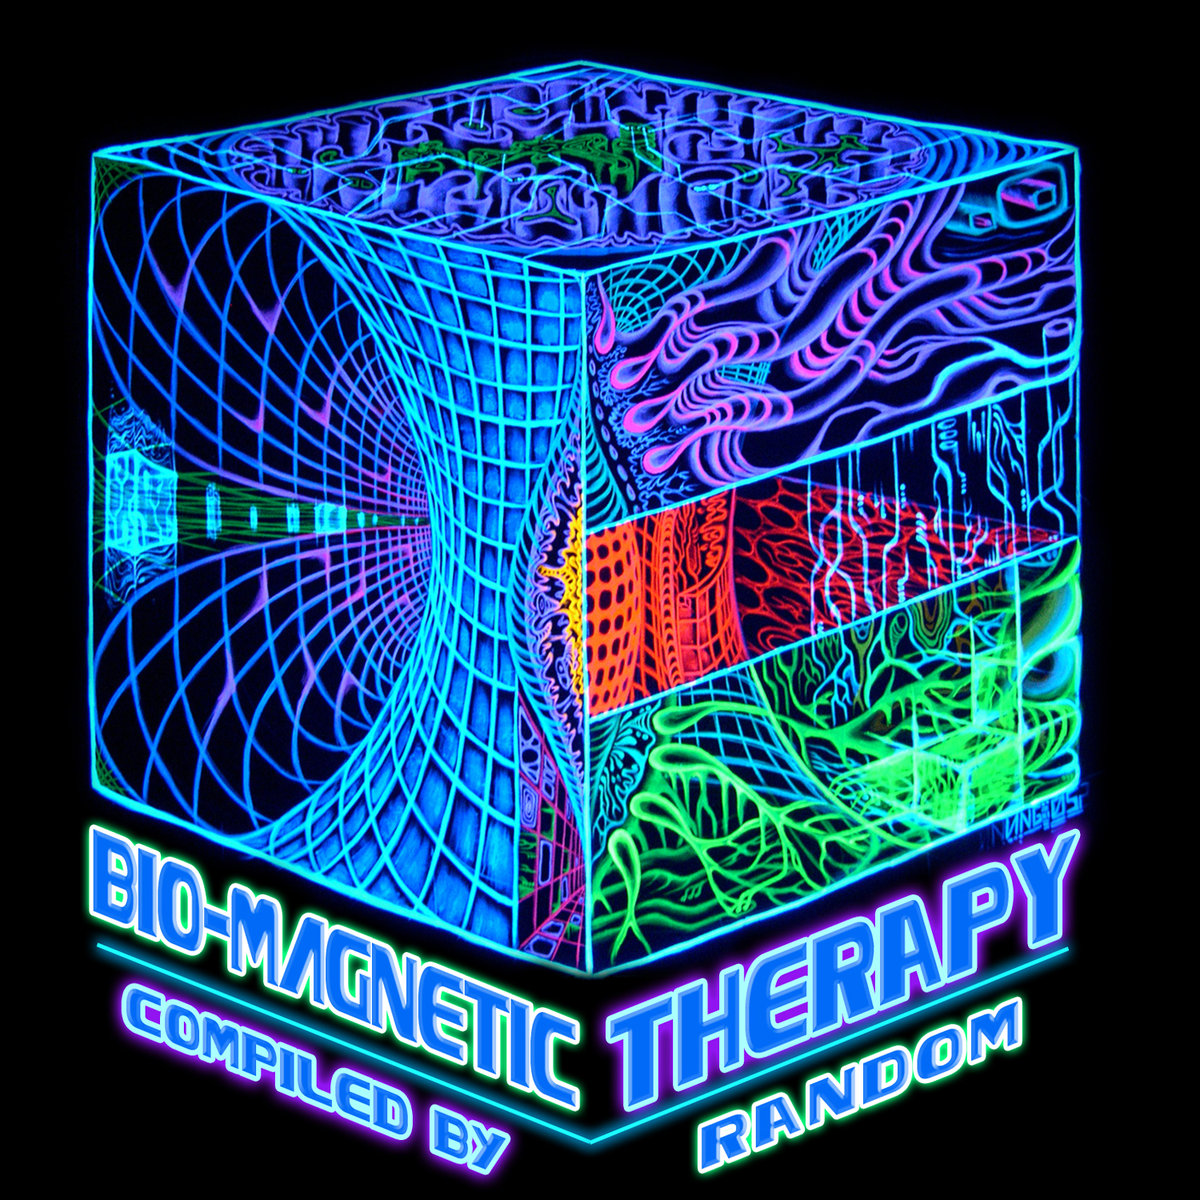 Shapestatic - Swinging Ducks @ 'Various Artists - Bio-Magnetic Therapy (Compiled by Random)' album (electronic, goa)